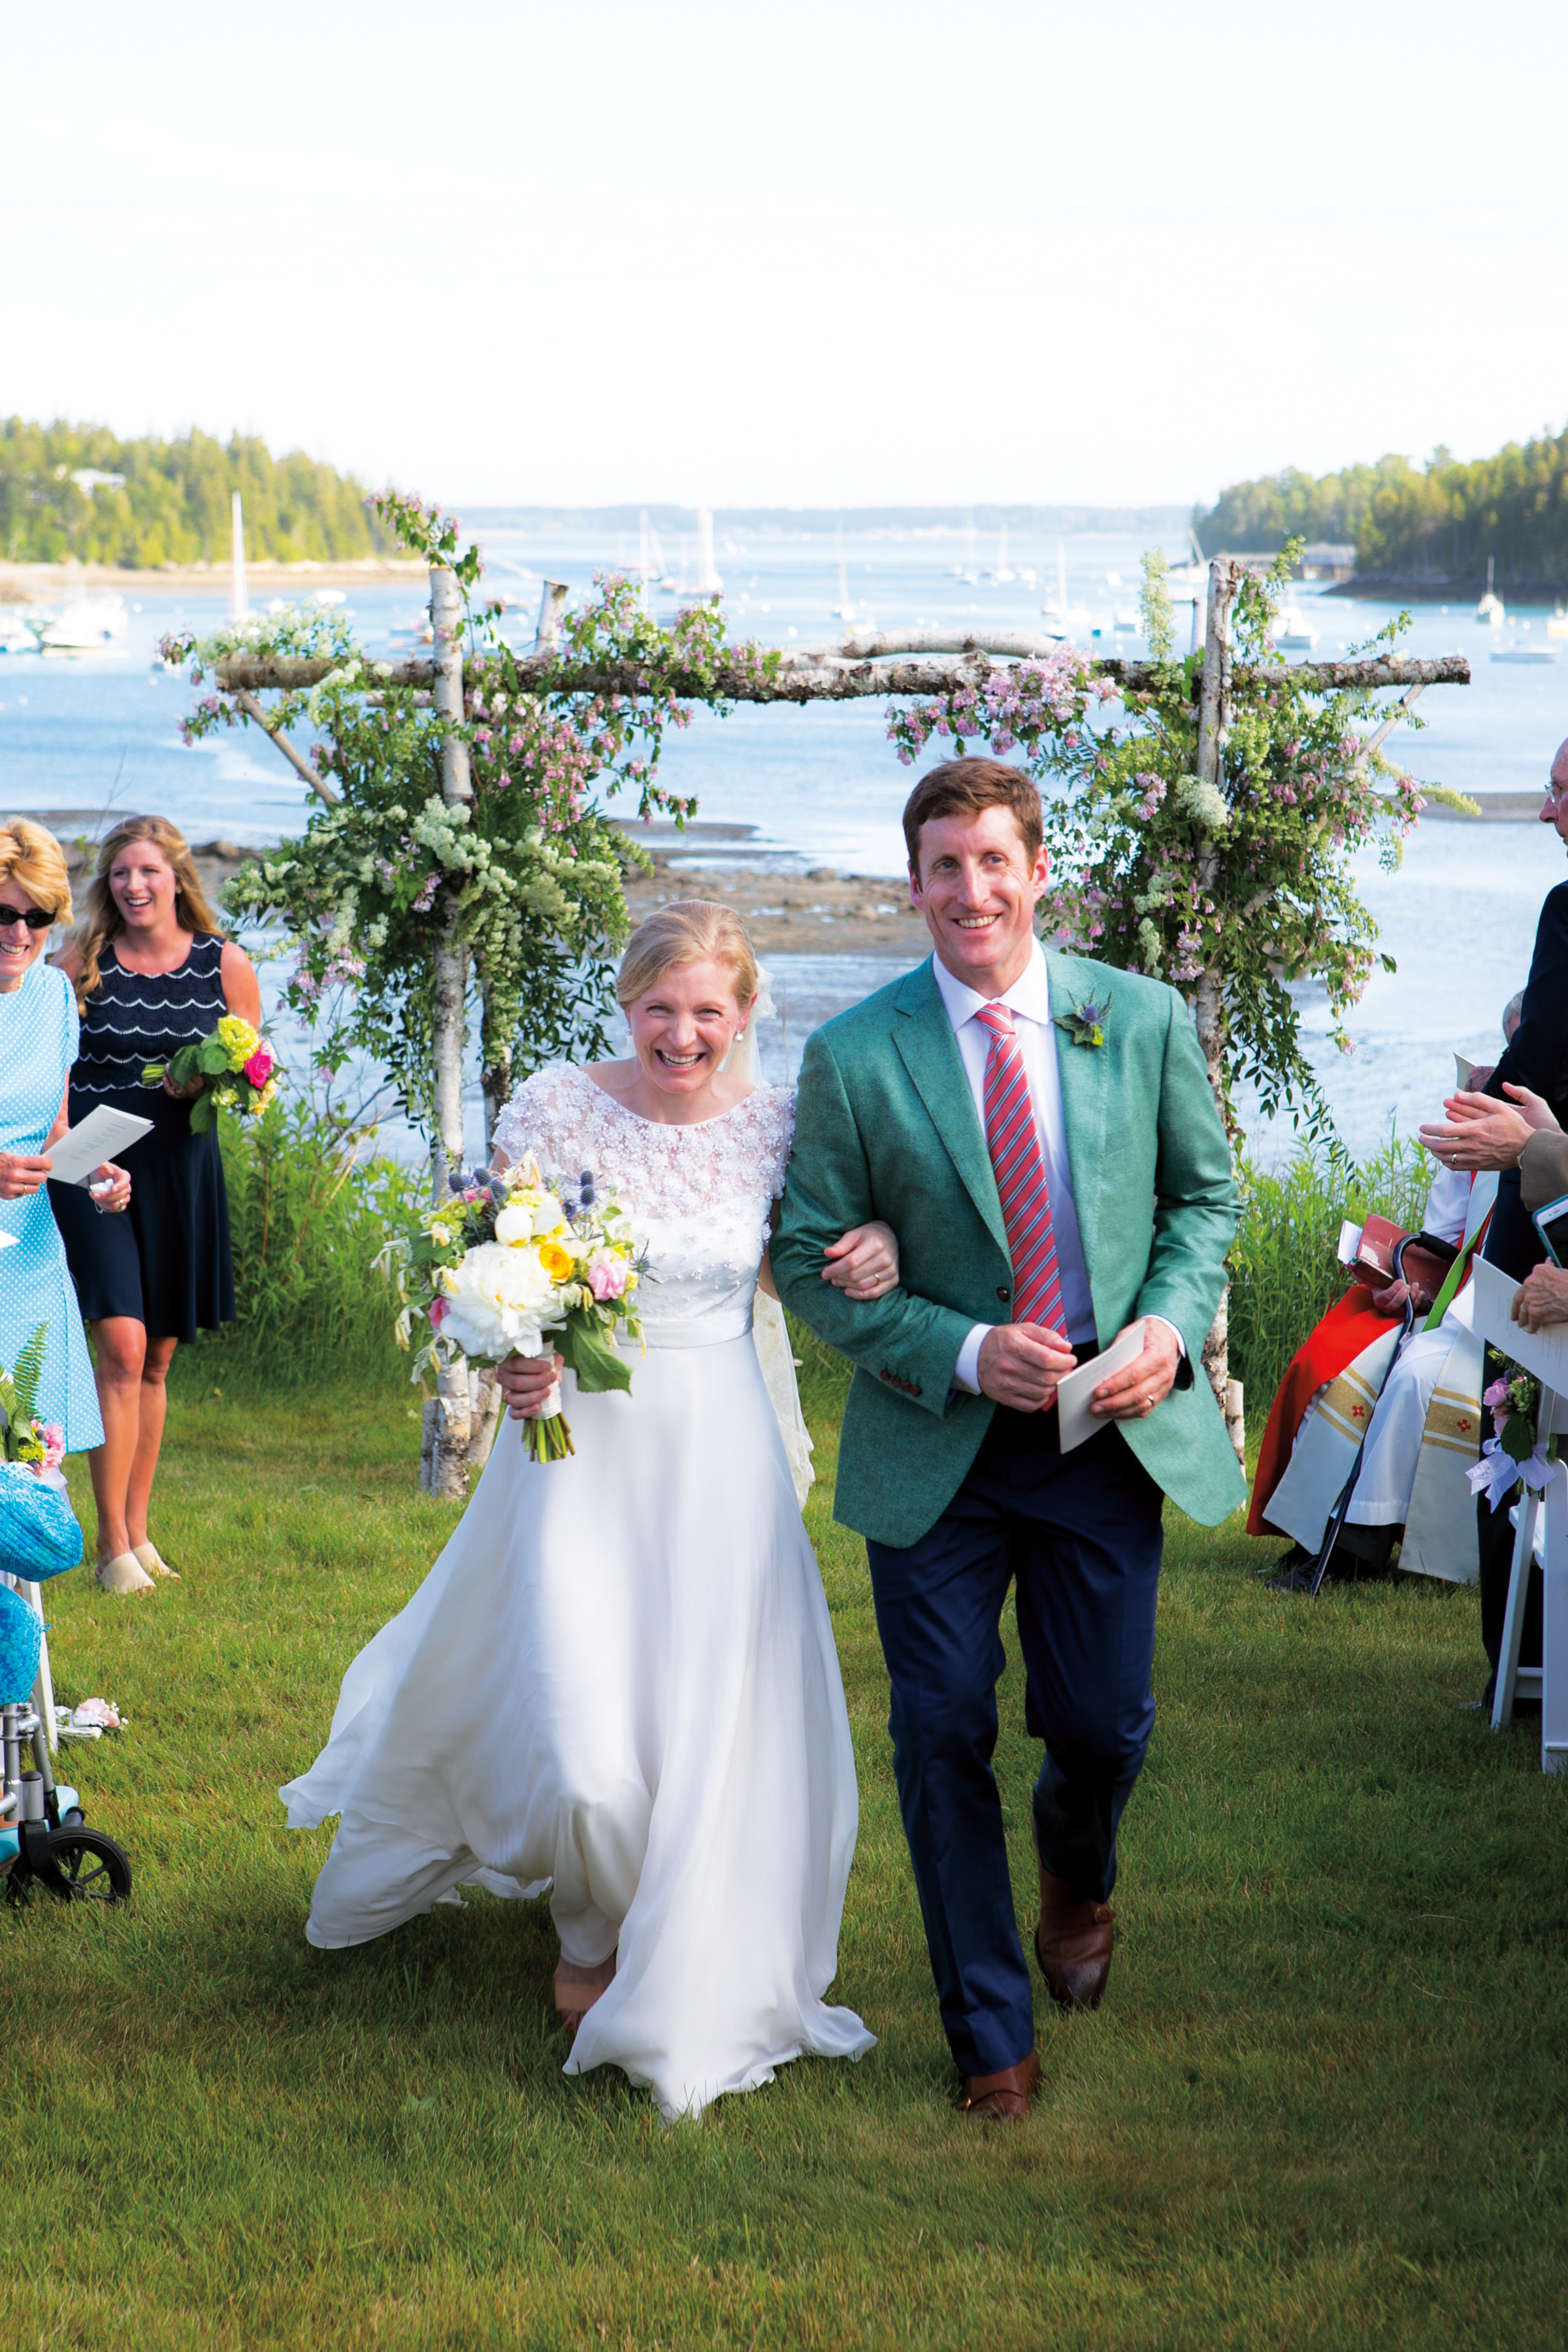 Prescott Logan '91 married Amory Loring '00 in Northeast Harbor, Maine.